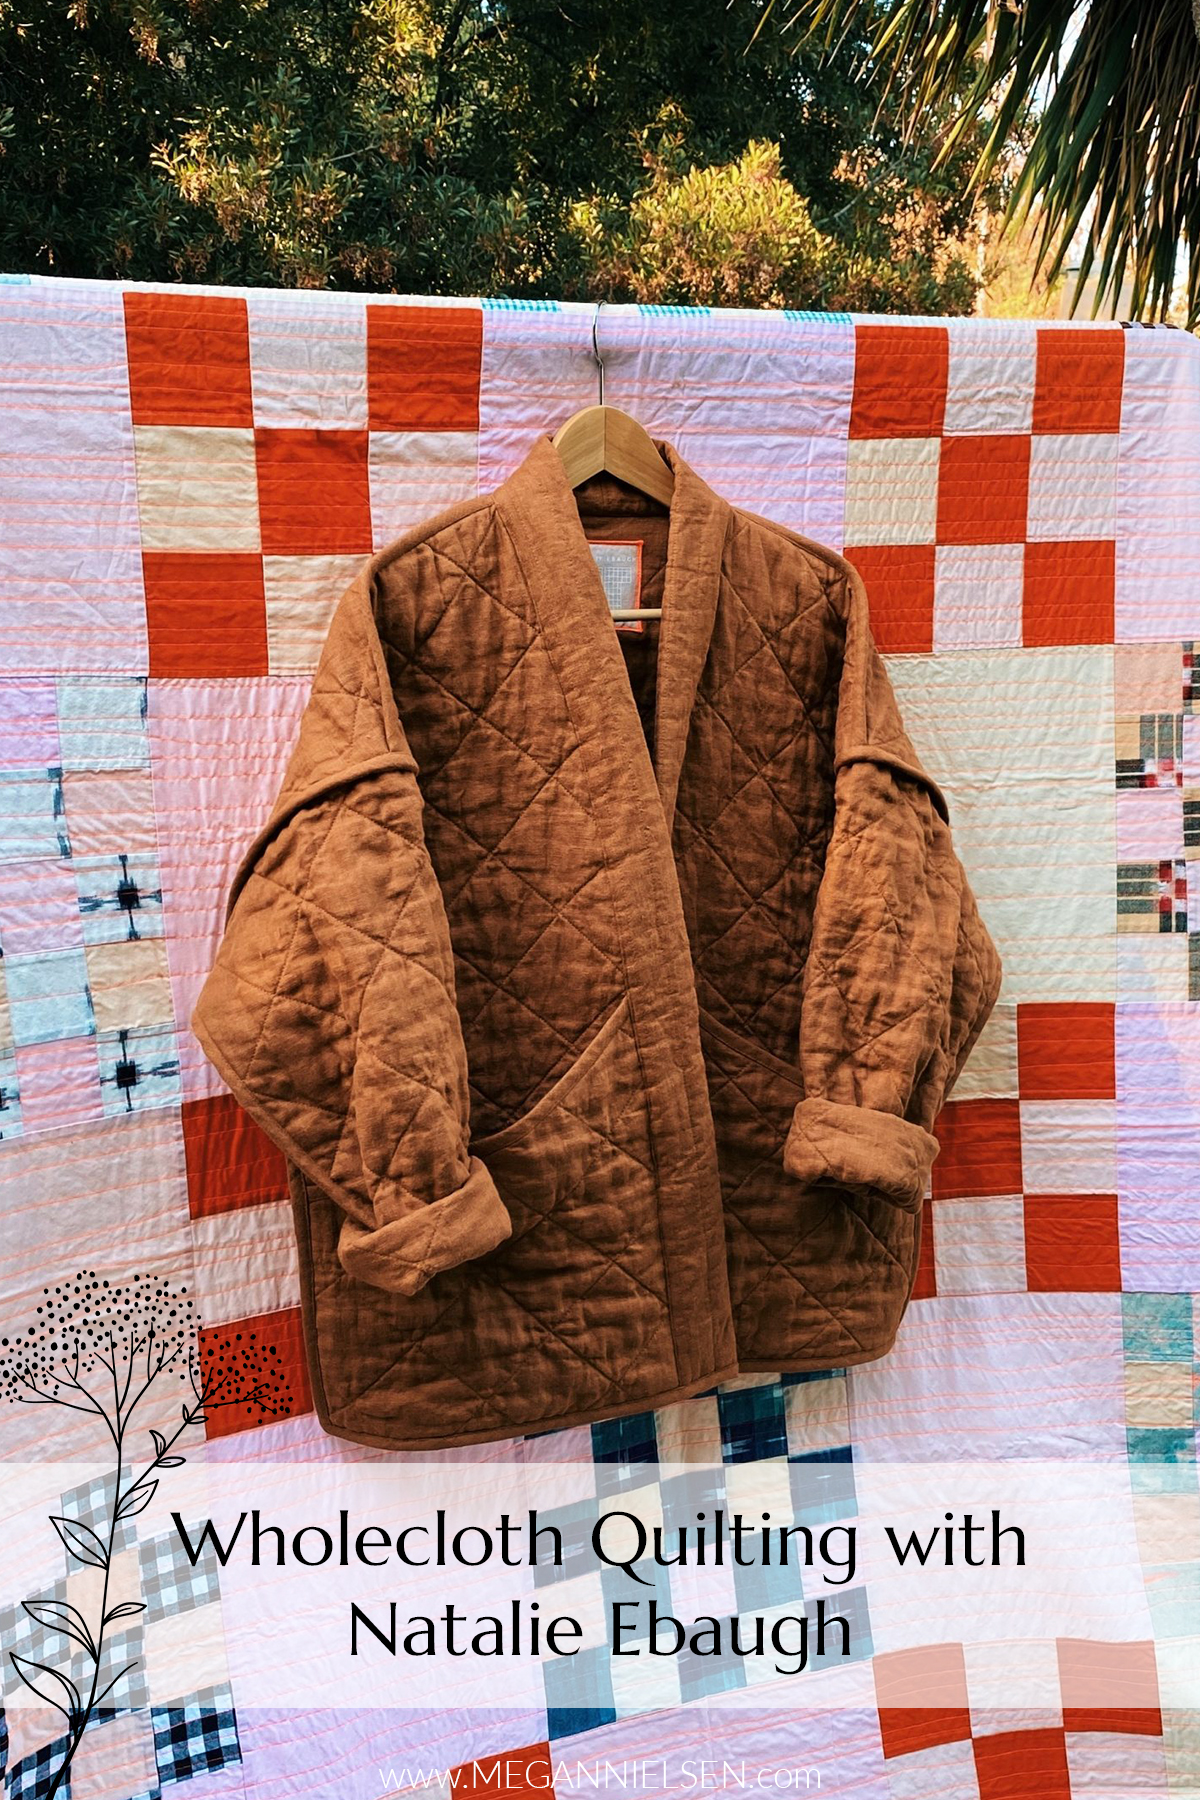 Wholecloth quilting with Natalie Ebaugh